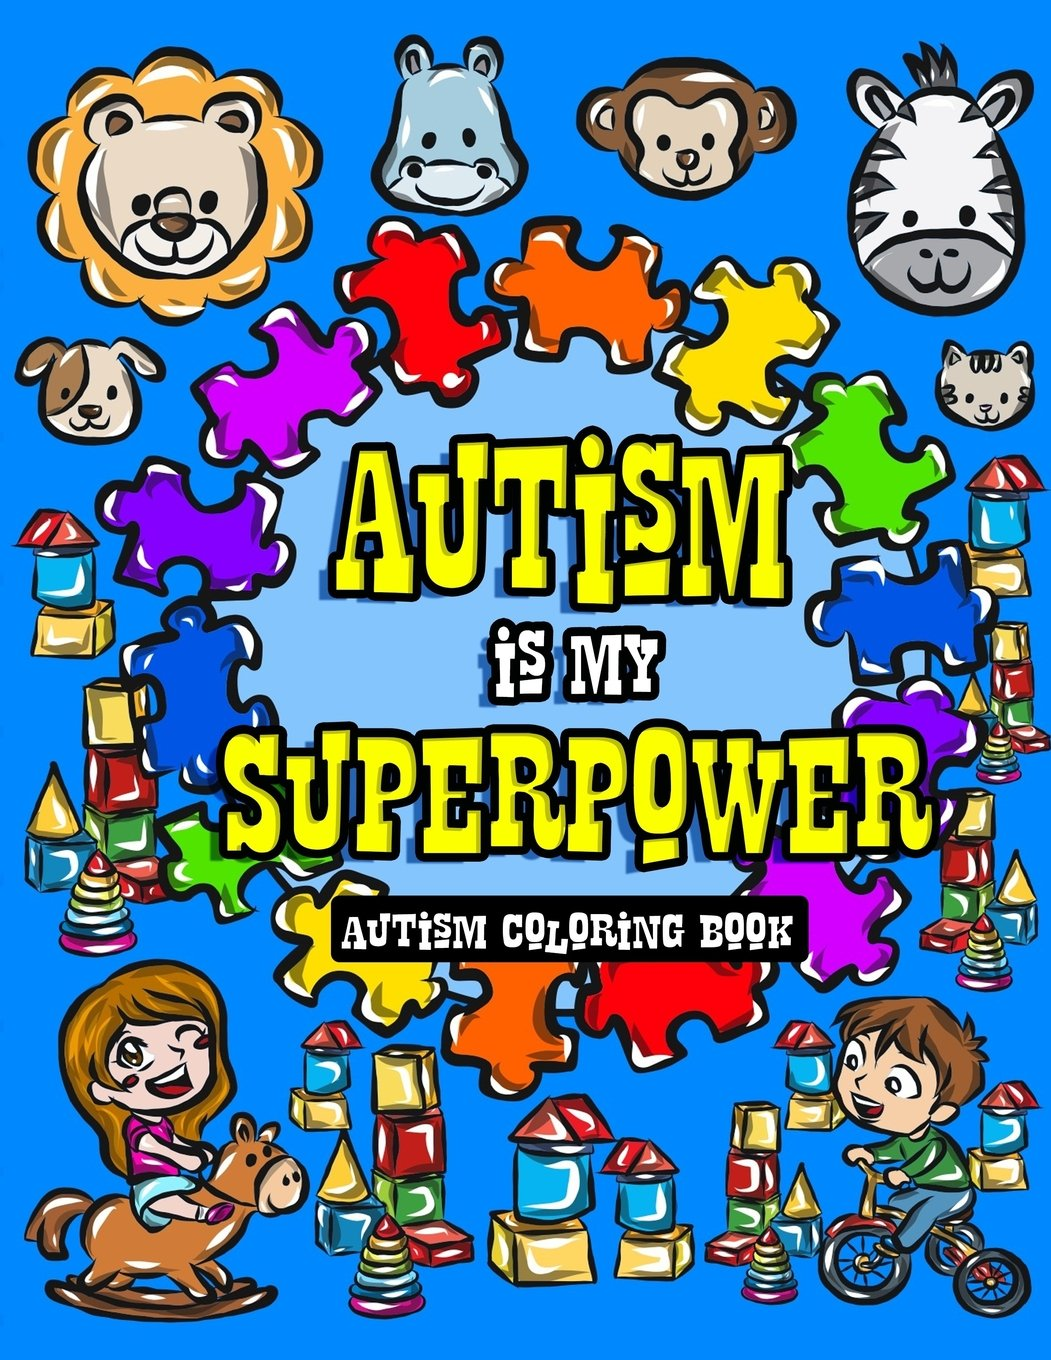 Autism Coloring Book Differently Superhero